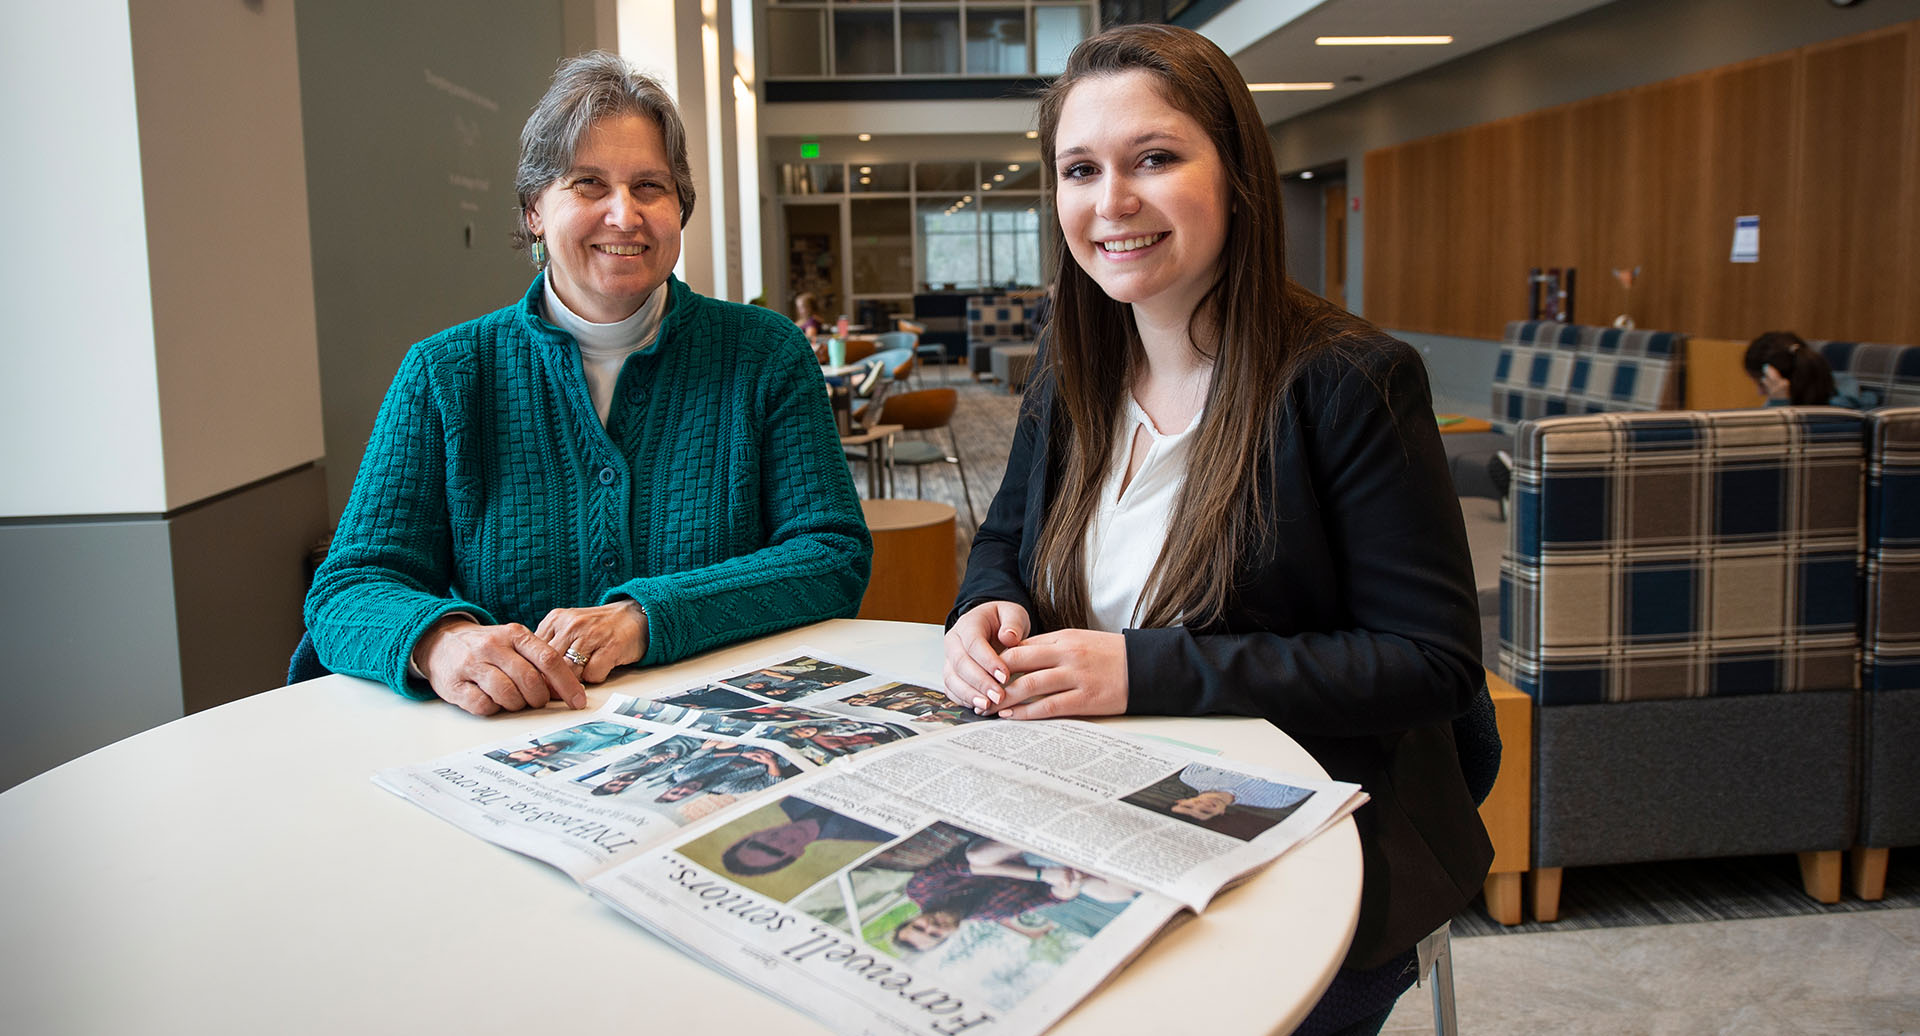 photo of Olivia Olbrych with Lisa Miller, journalism professor